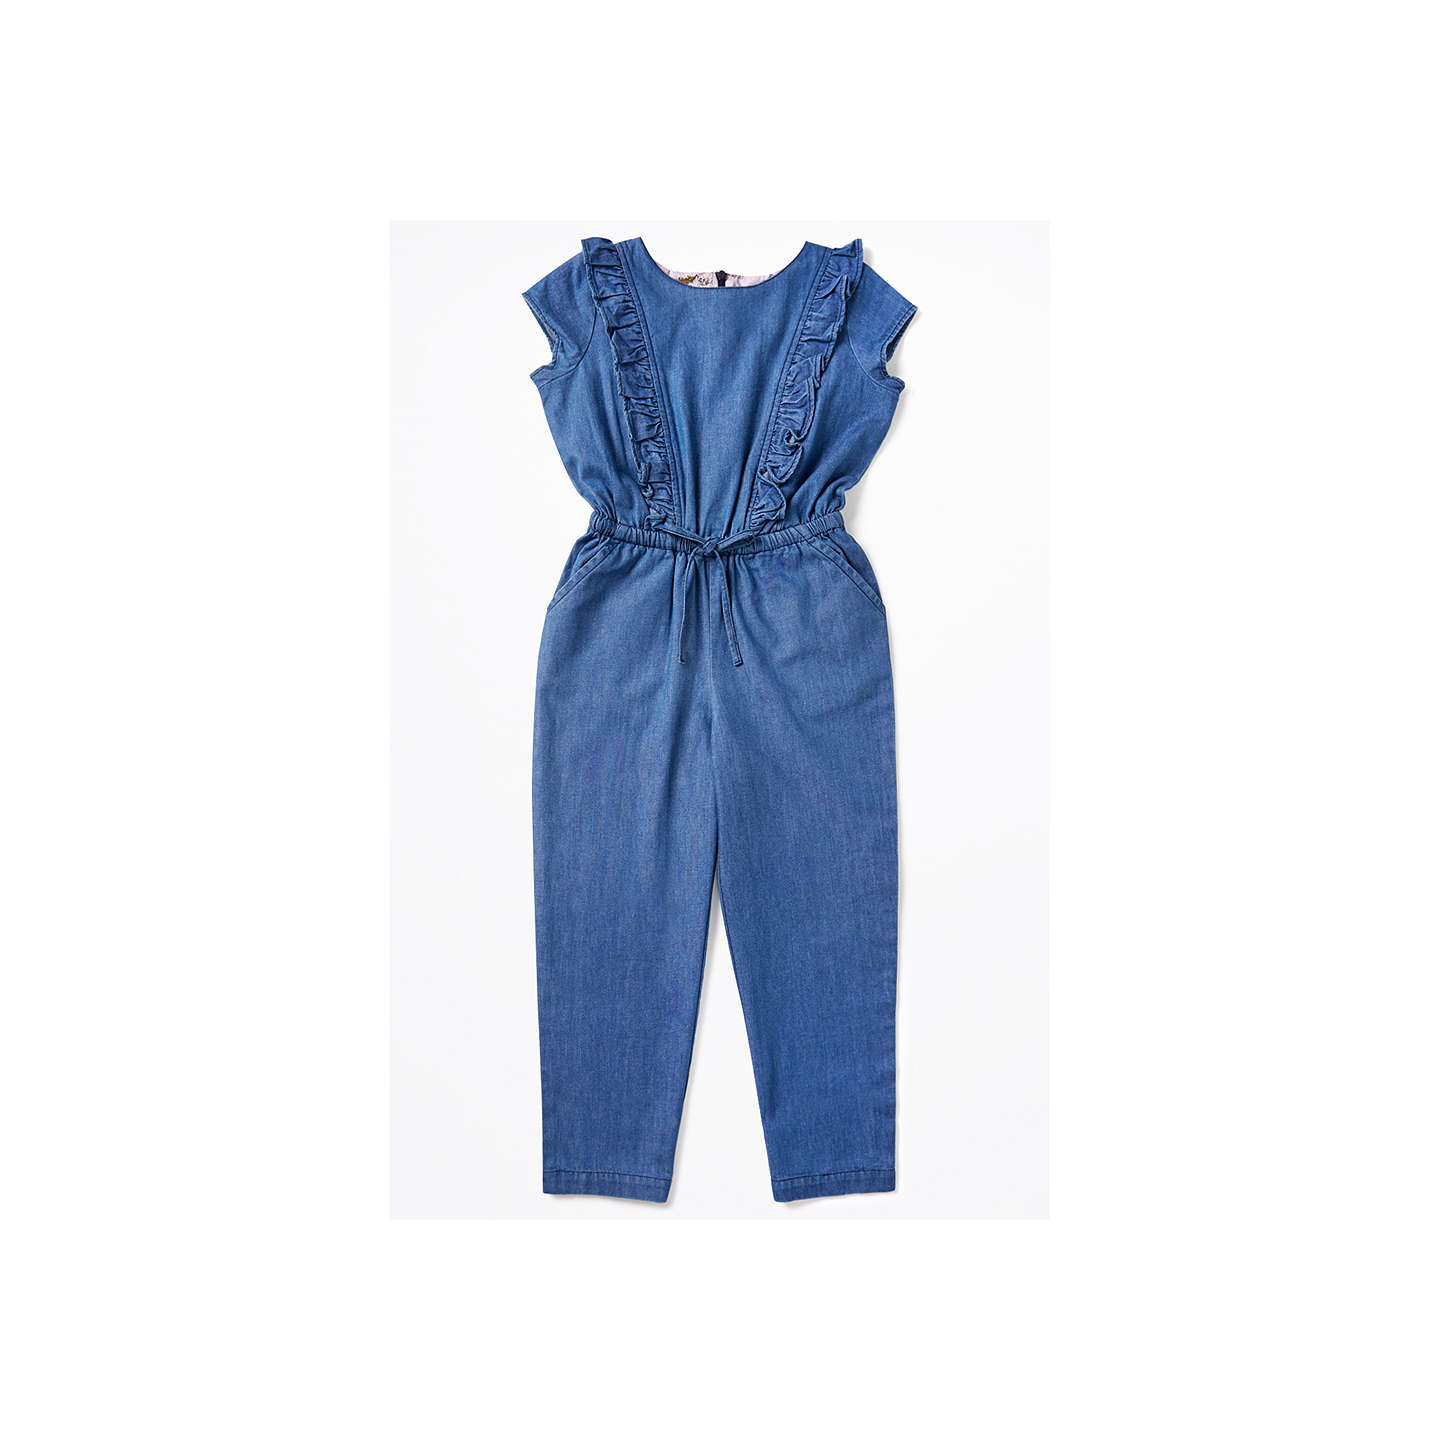 Jigsaw Girls' Chambray Jumpsuit, Navy by Jigsaw